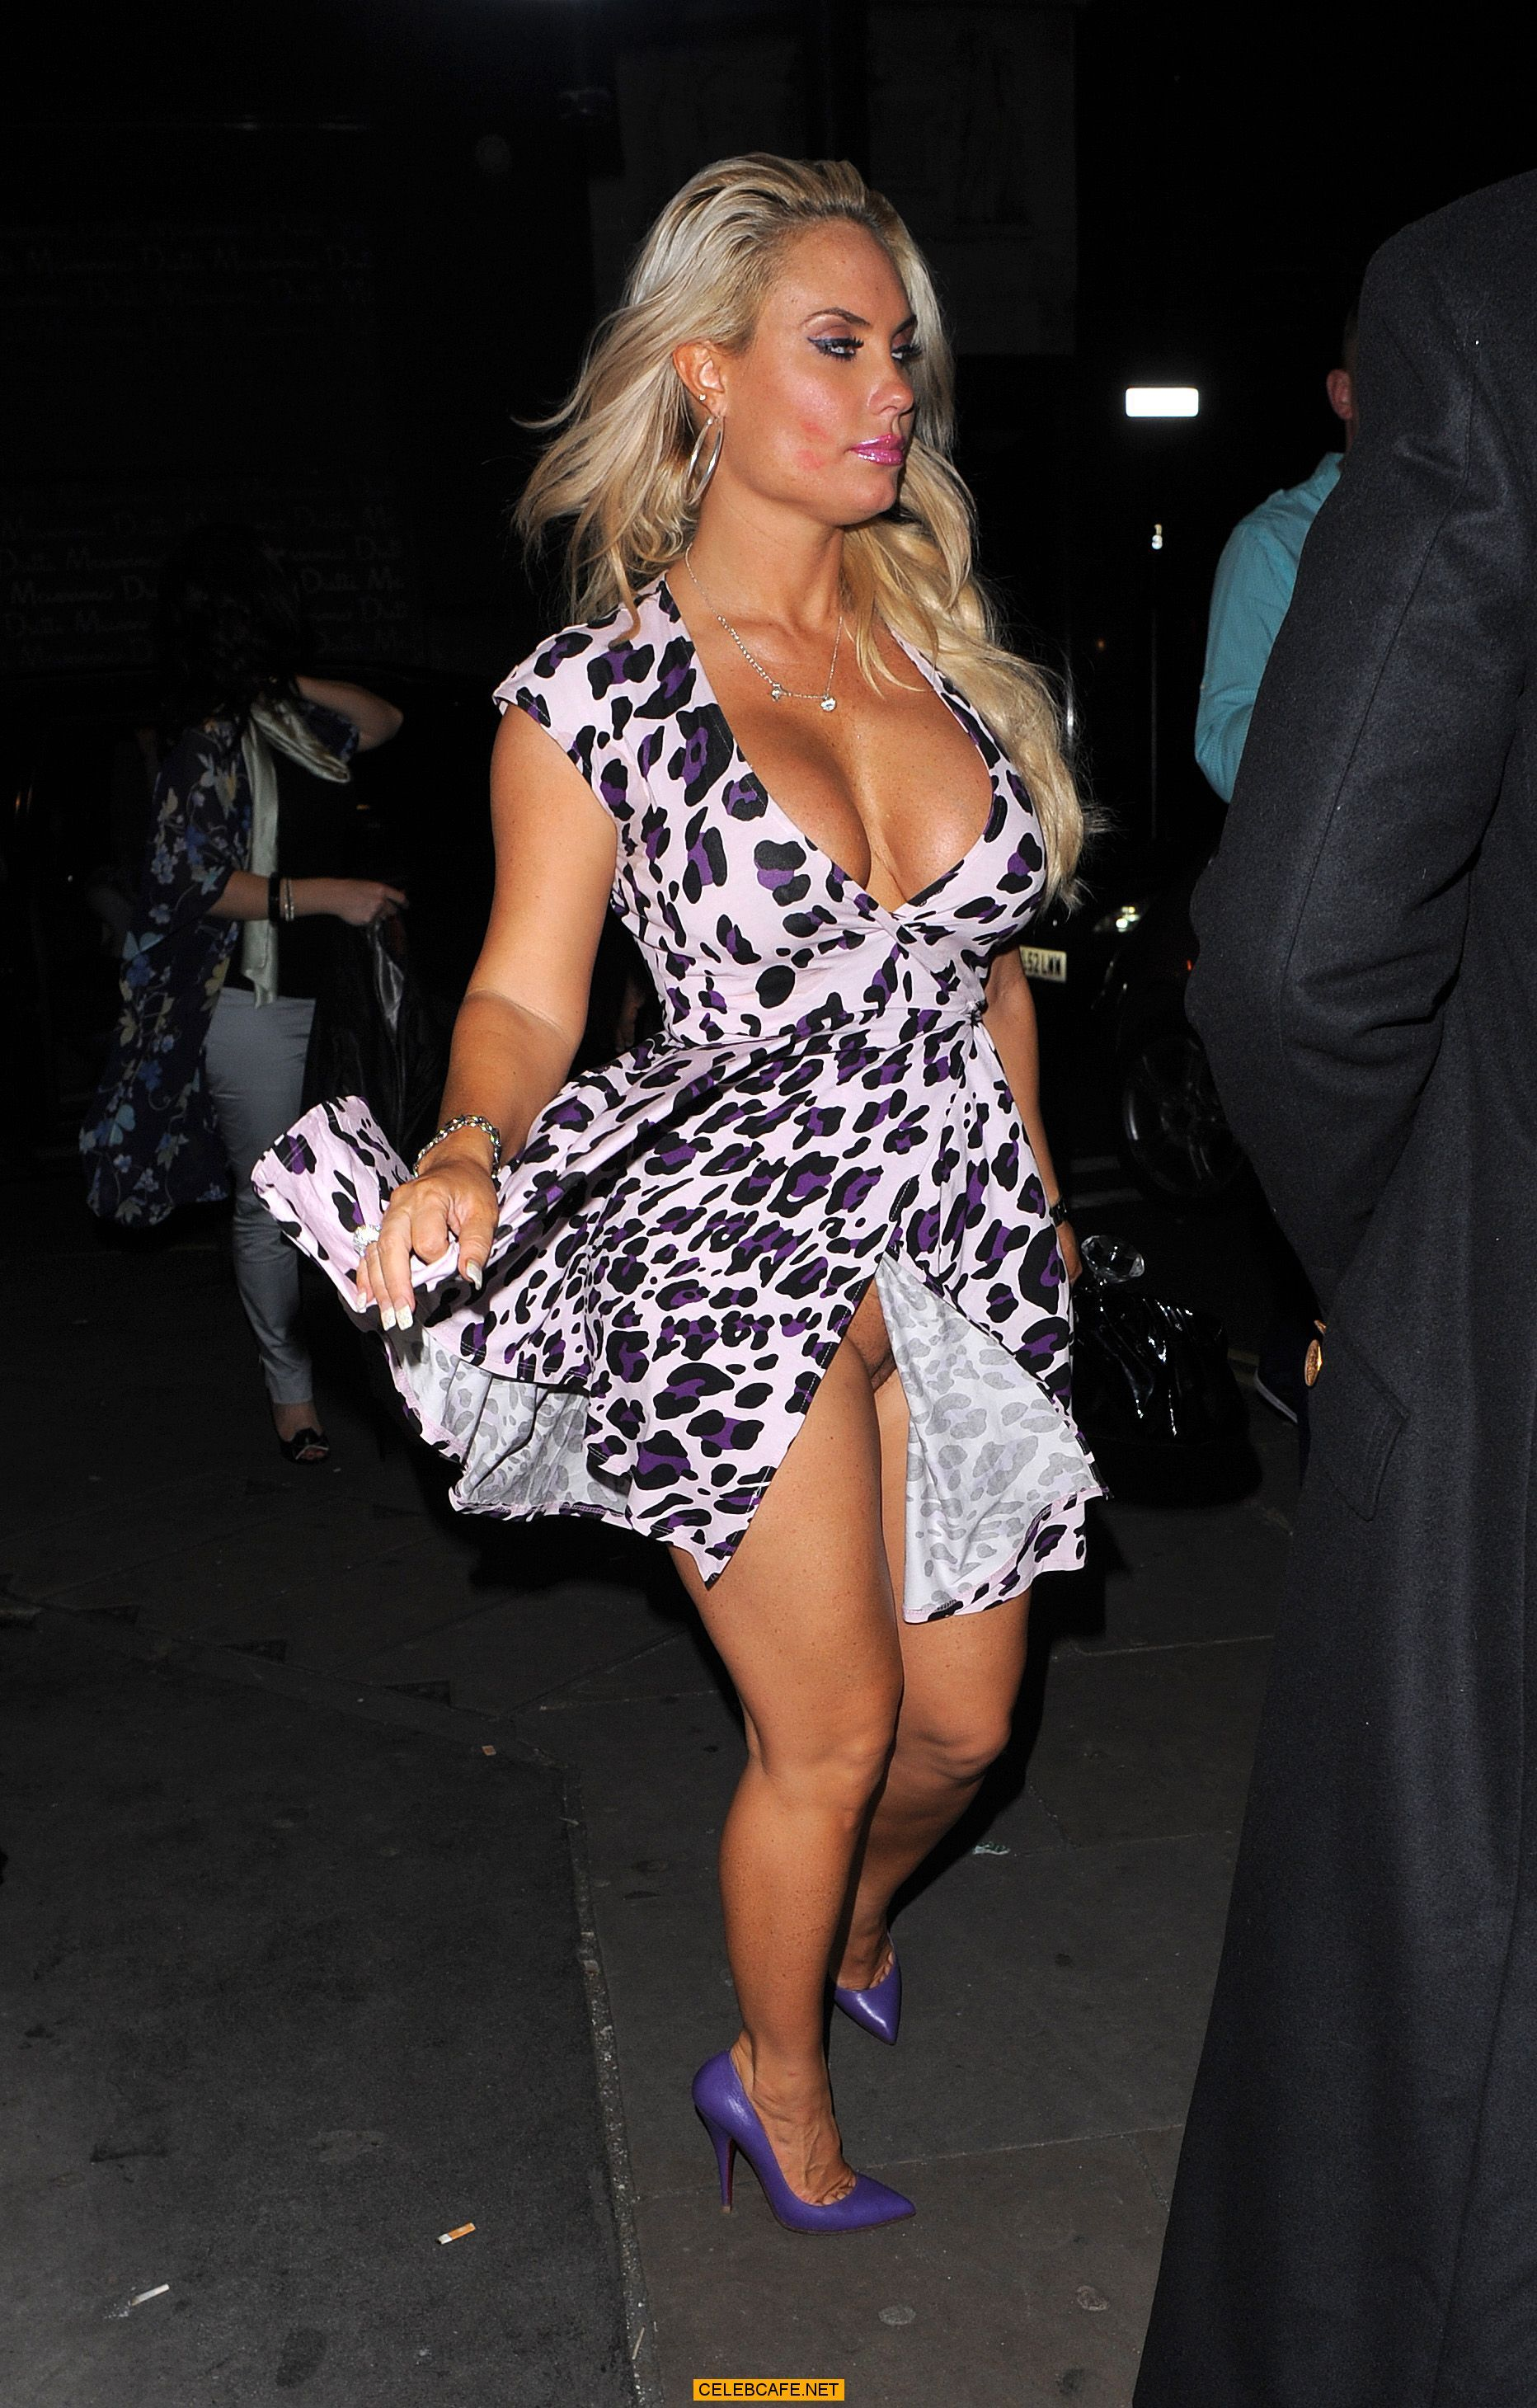 Coco wardrobe malfunction photos Coco Suffers Wardrobe Malfunction at Fashion Week! m